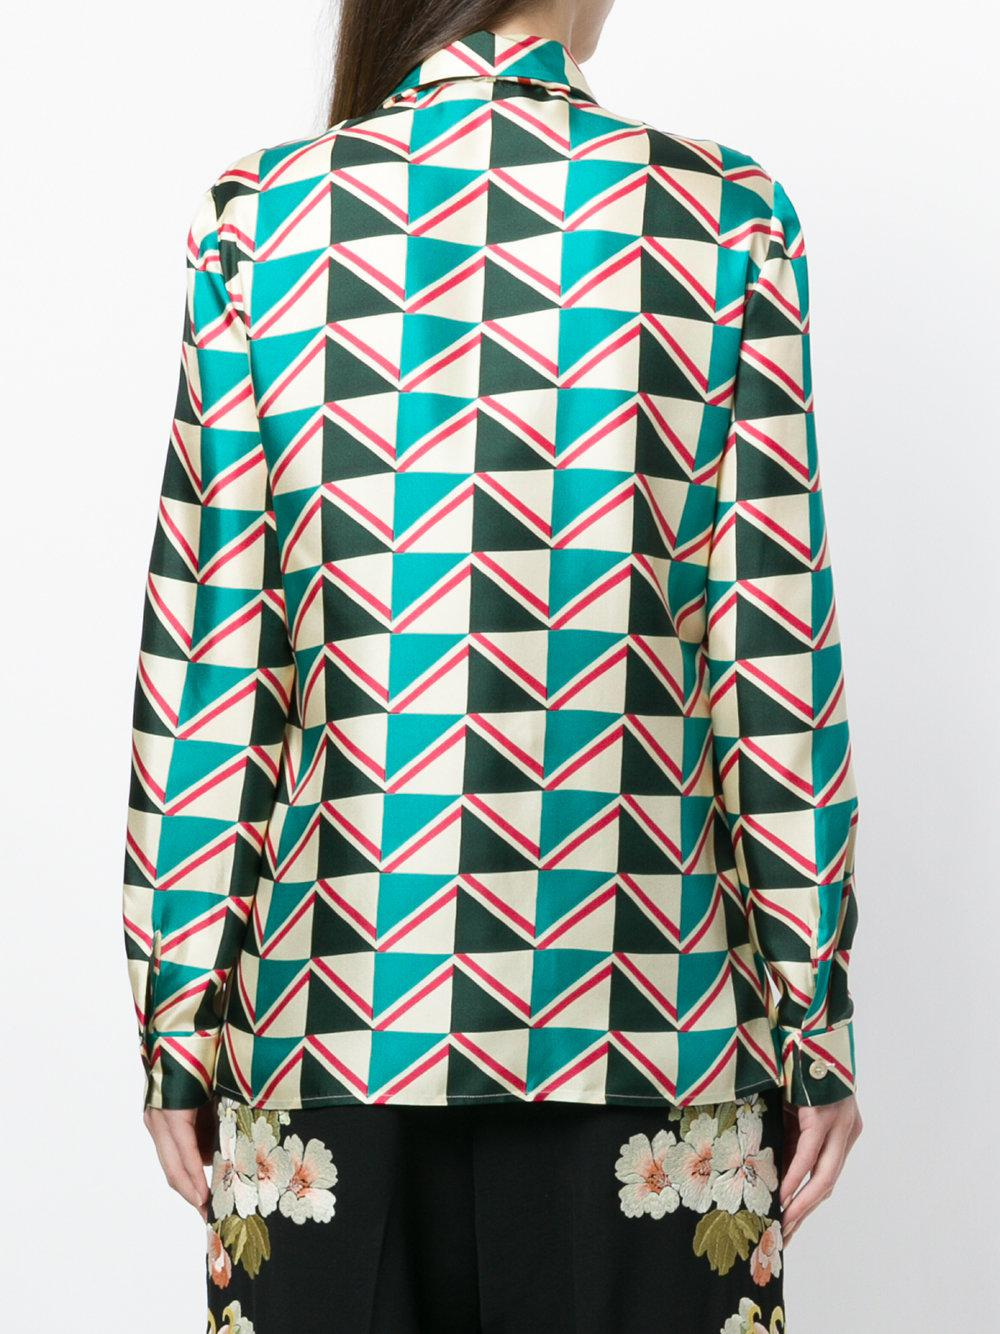 d5ea3cebc43 Gucci - Multicolor Geometric Print Blouse With Pussy Bow - Lyst. View  fullscreen